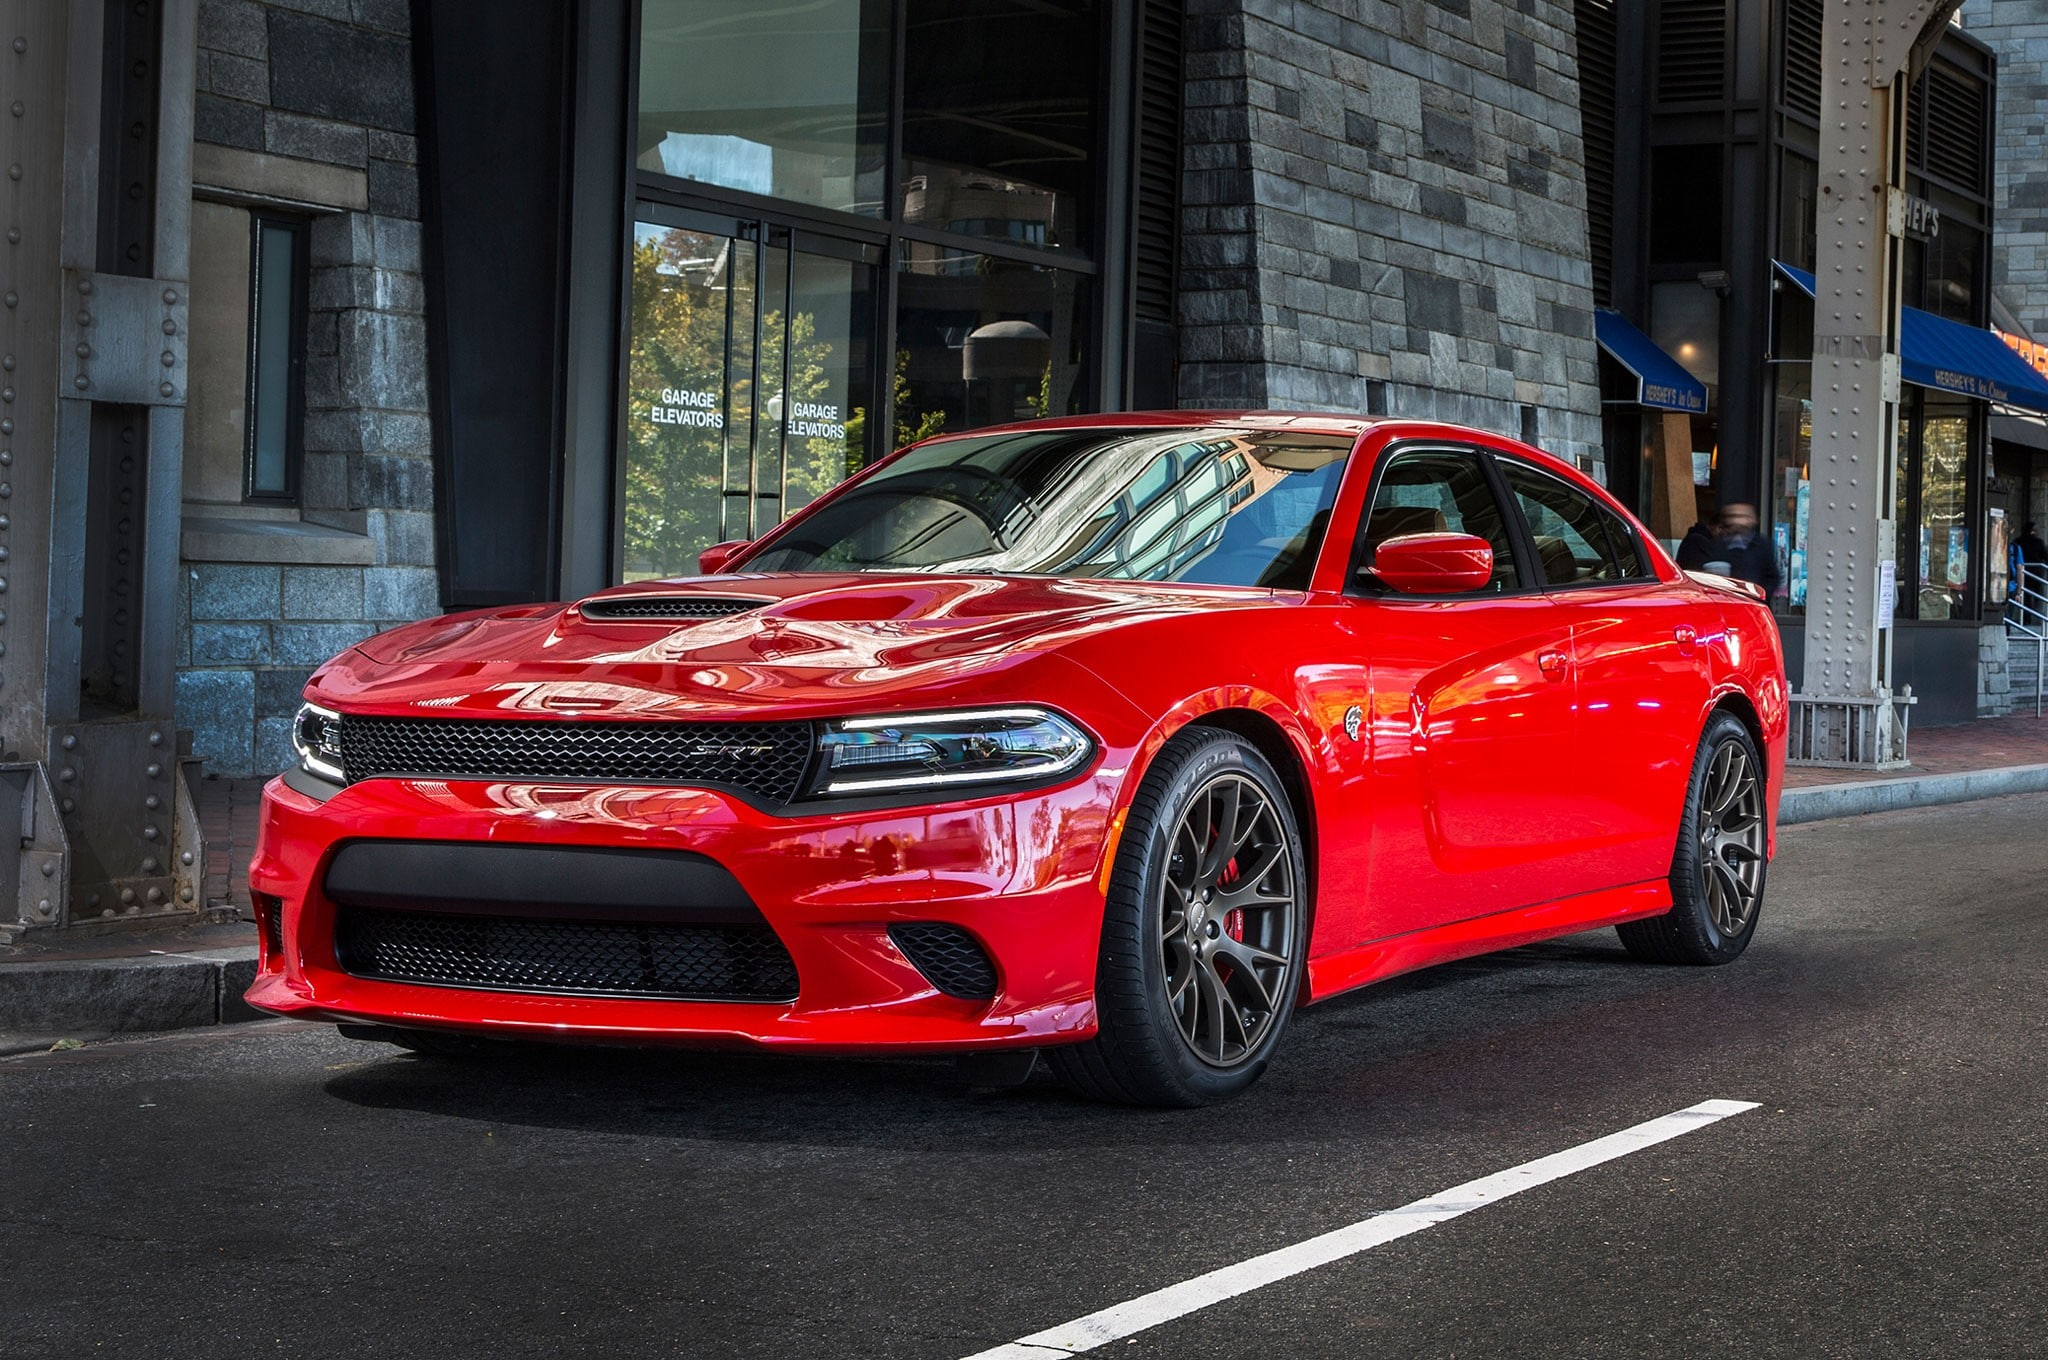 best sports cars under 30k 2018 Dodge Charger SRT8 Red